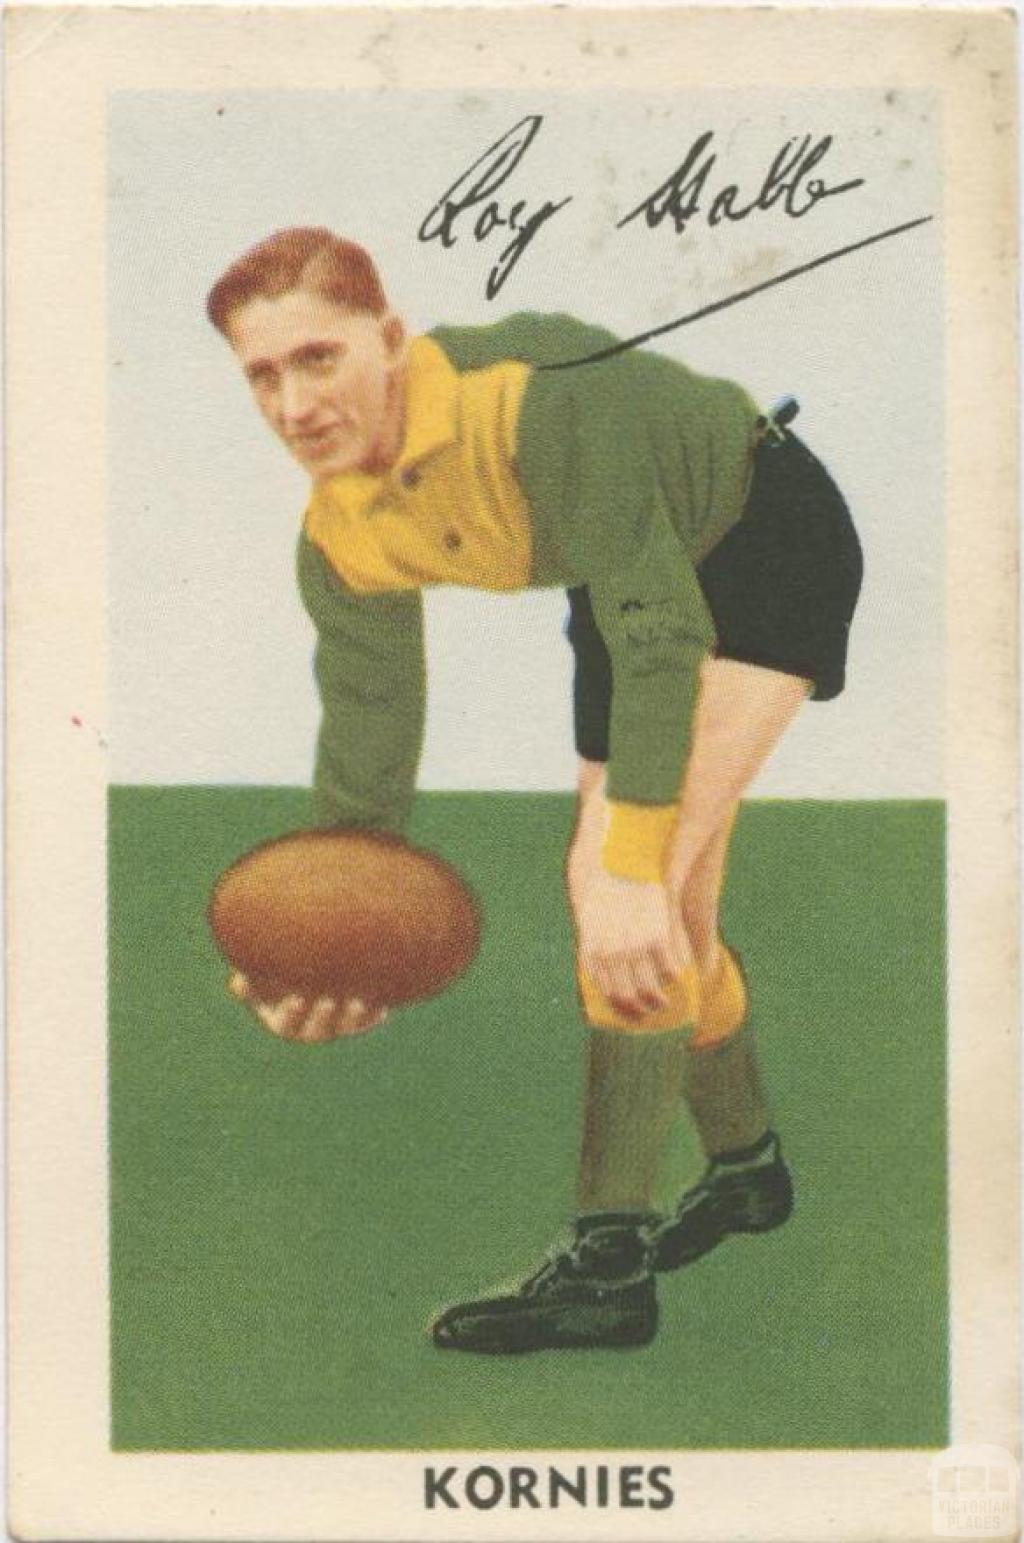 Roy Stabb, Northcote Football Club, Kornies Card